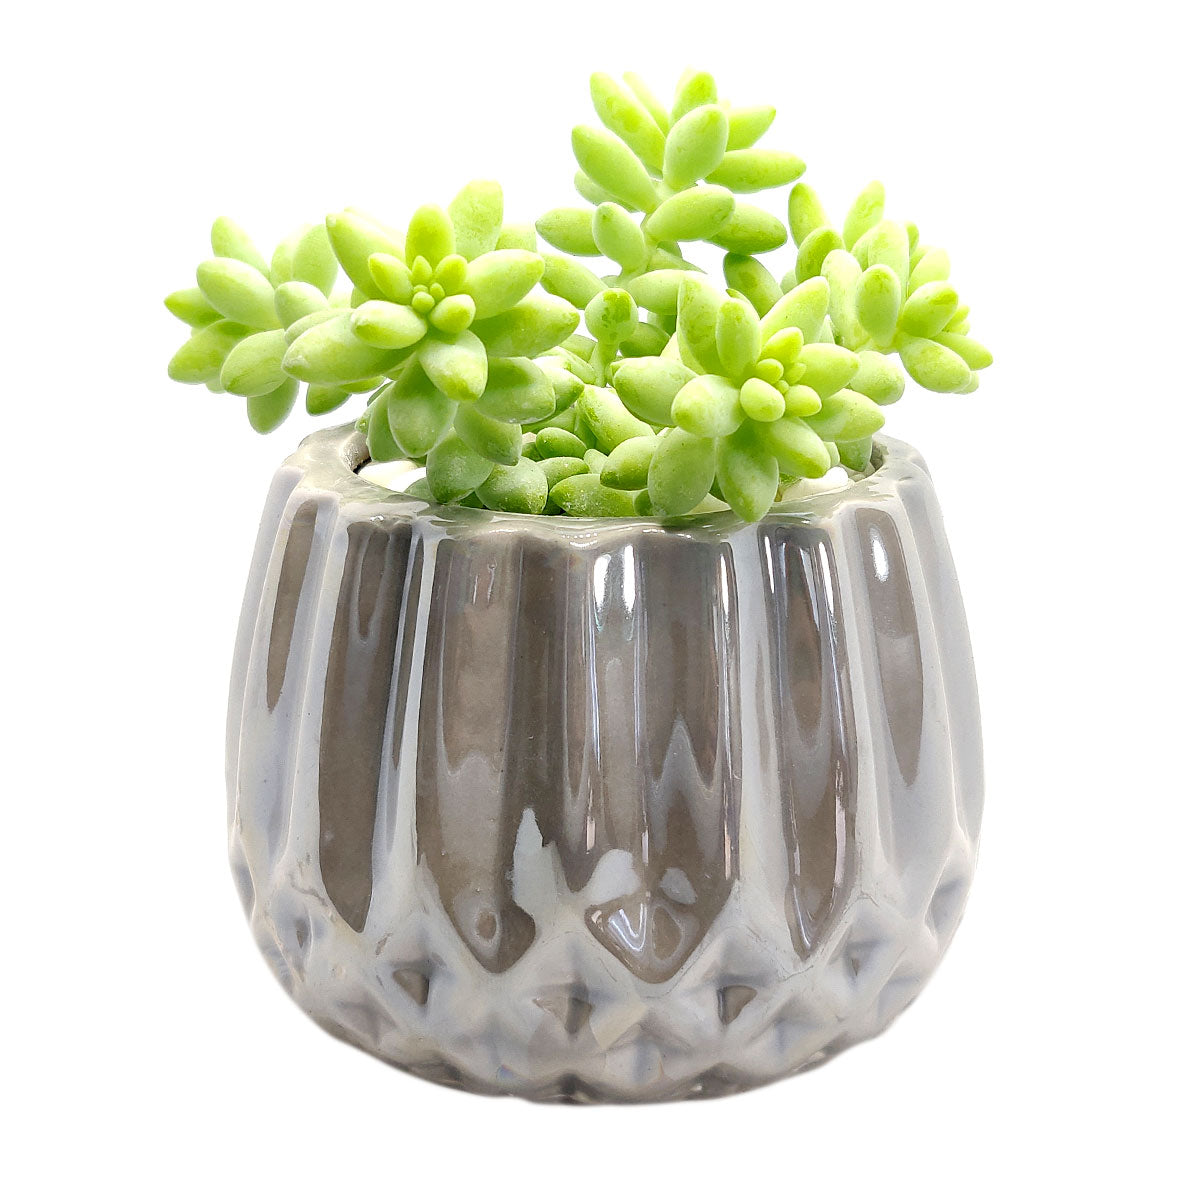 Pot for sale, Mini pot for succulent, Succulent pot decor ideas, Silver Modern Geometric Pot pot, Flower pot for sale, glass pots for planting, succulent gift for holiday